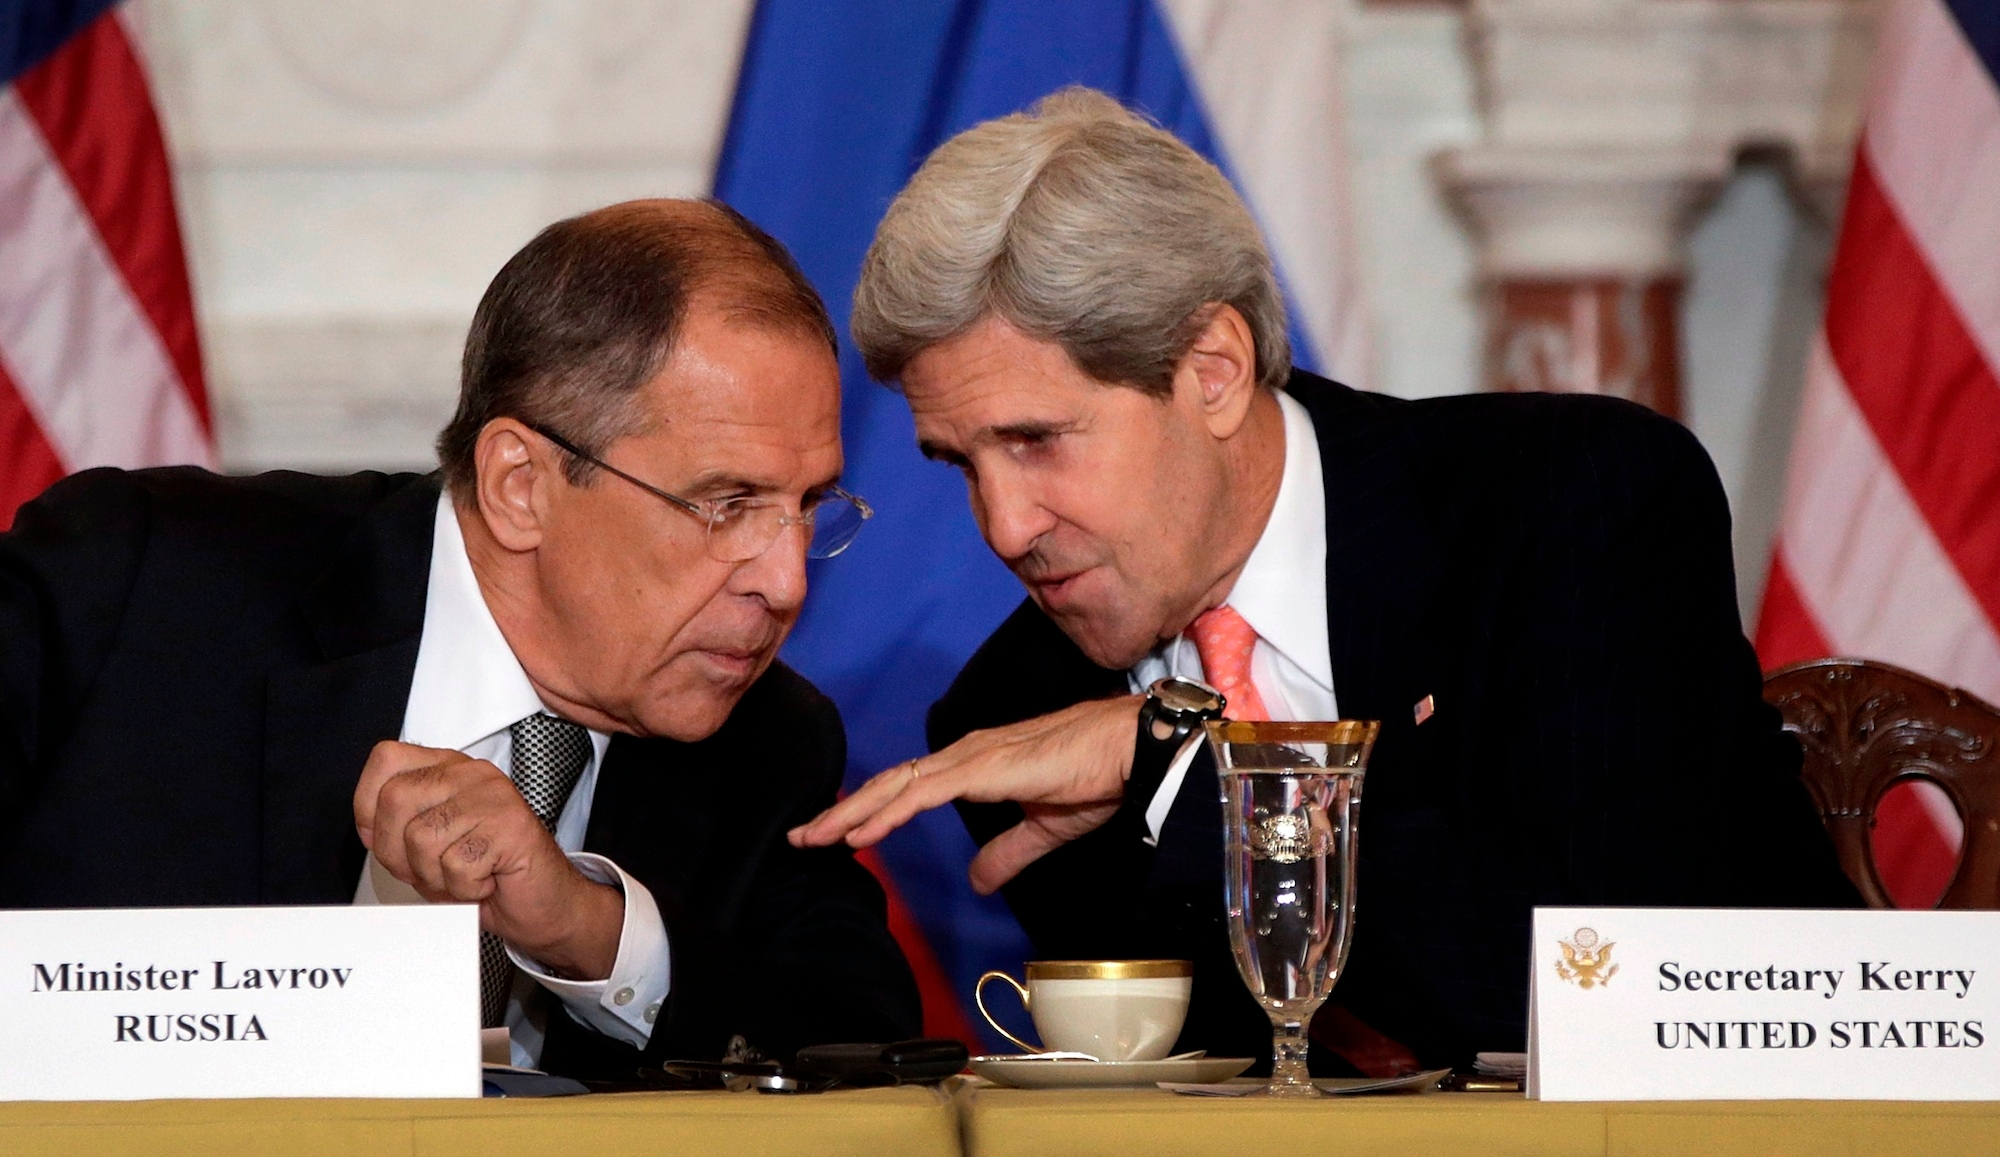 Russian Foreign Minister Sergey Lavrov talks with U.S. Secretary of State John Kerry in Washington, Aug. 9, 2013. (Win McNamee/Getty Images)